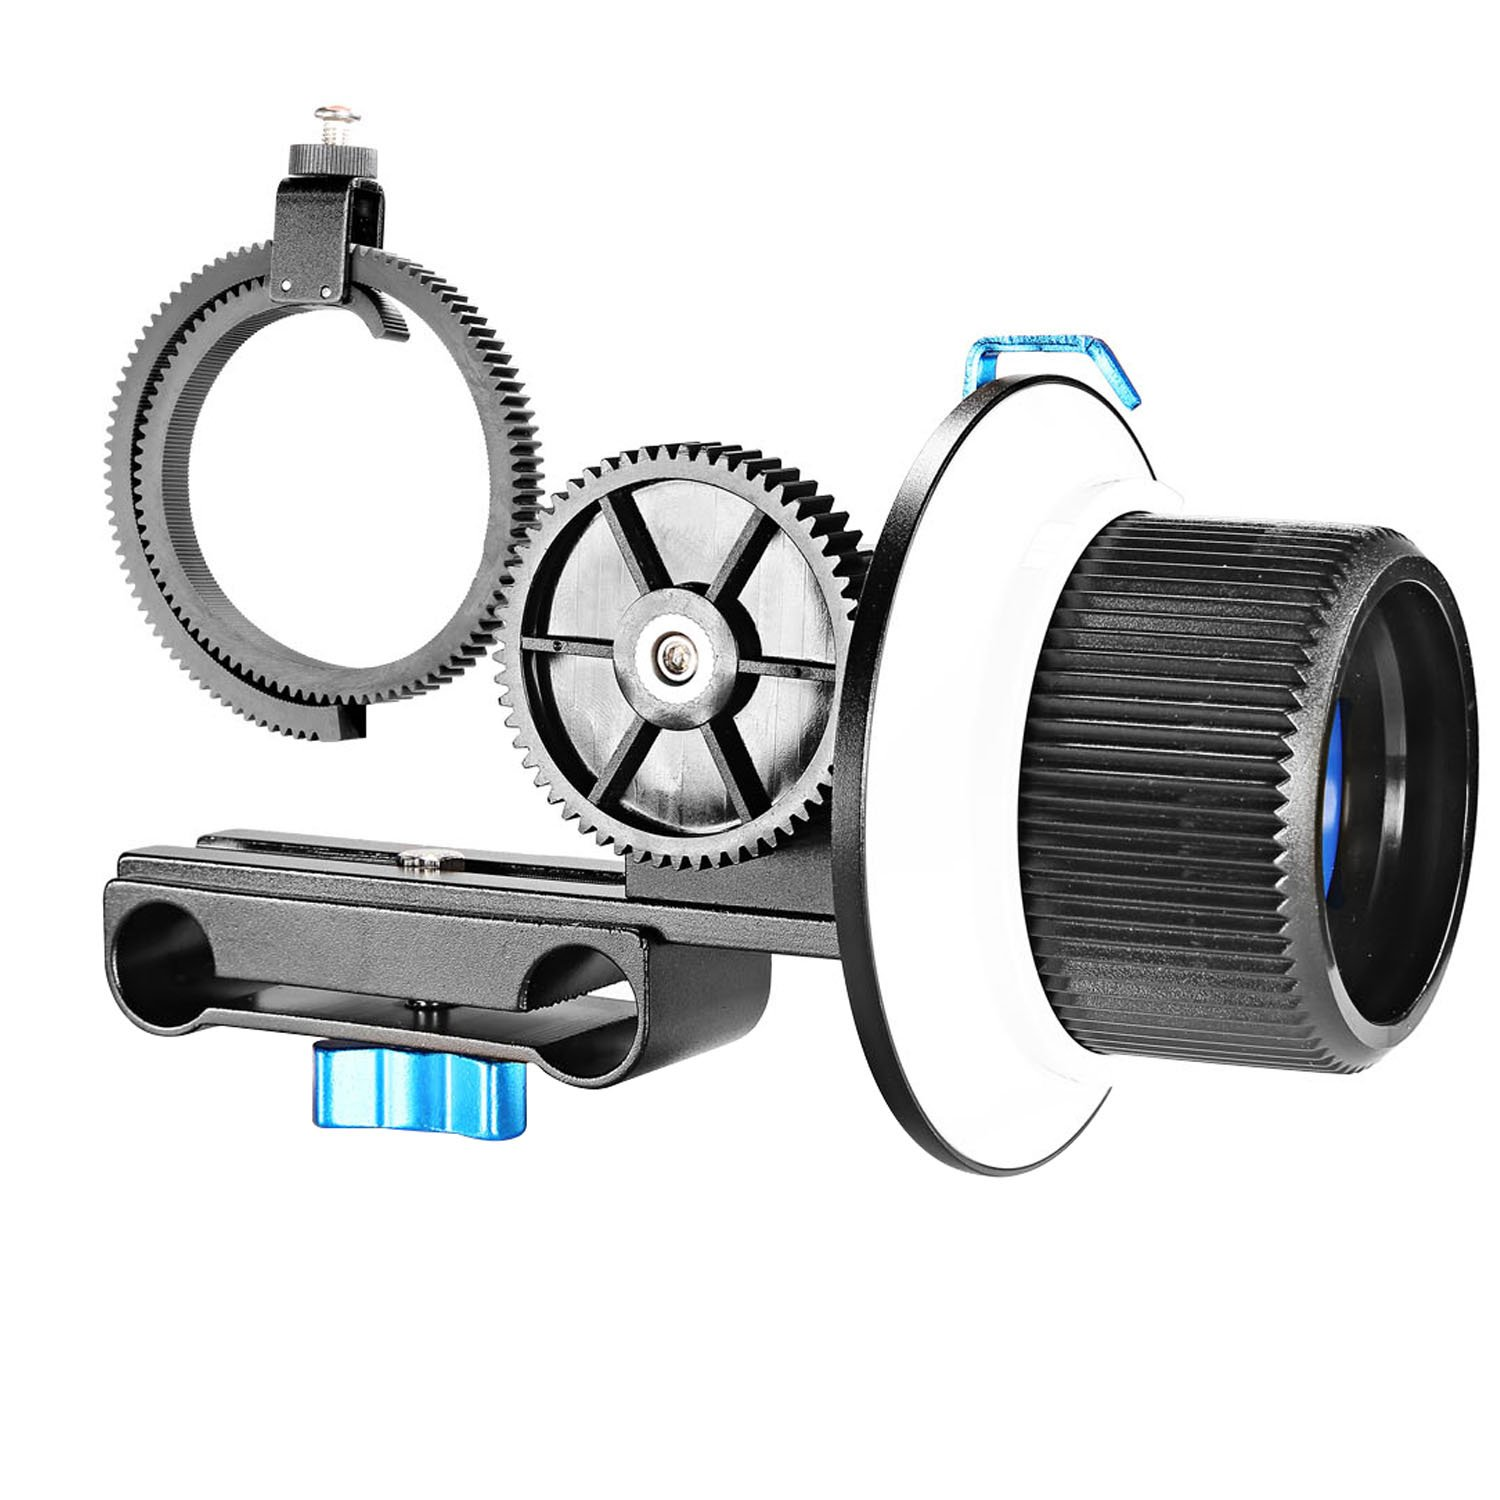 Neewer® Follow Focus with Adjustbale Gear Ring Belt for DSLR Cameras Such as Nikon, Canon, Sony/DV/Camcorder/Film/Video Cameras, Fits Shoulder Supports, Stabilizers, Movie rigs, All 15mm Rod Mounts FBA_10085709